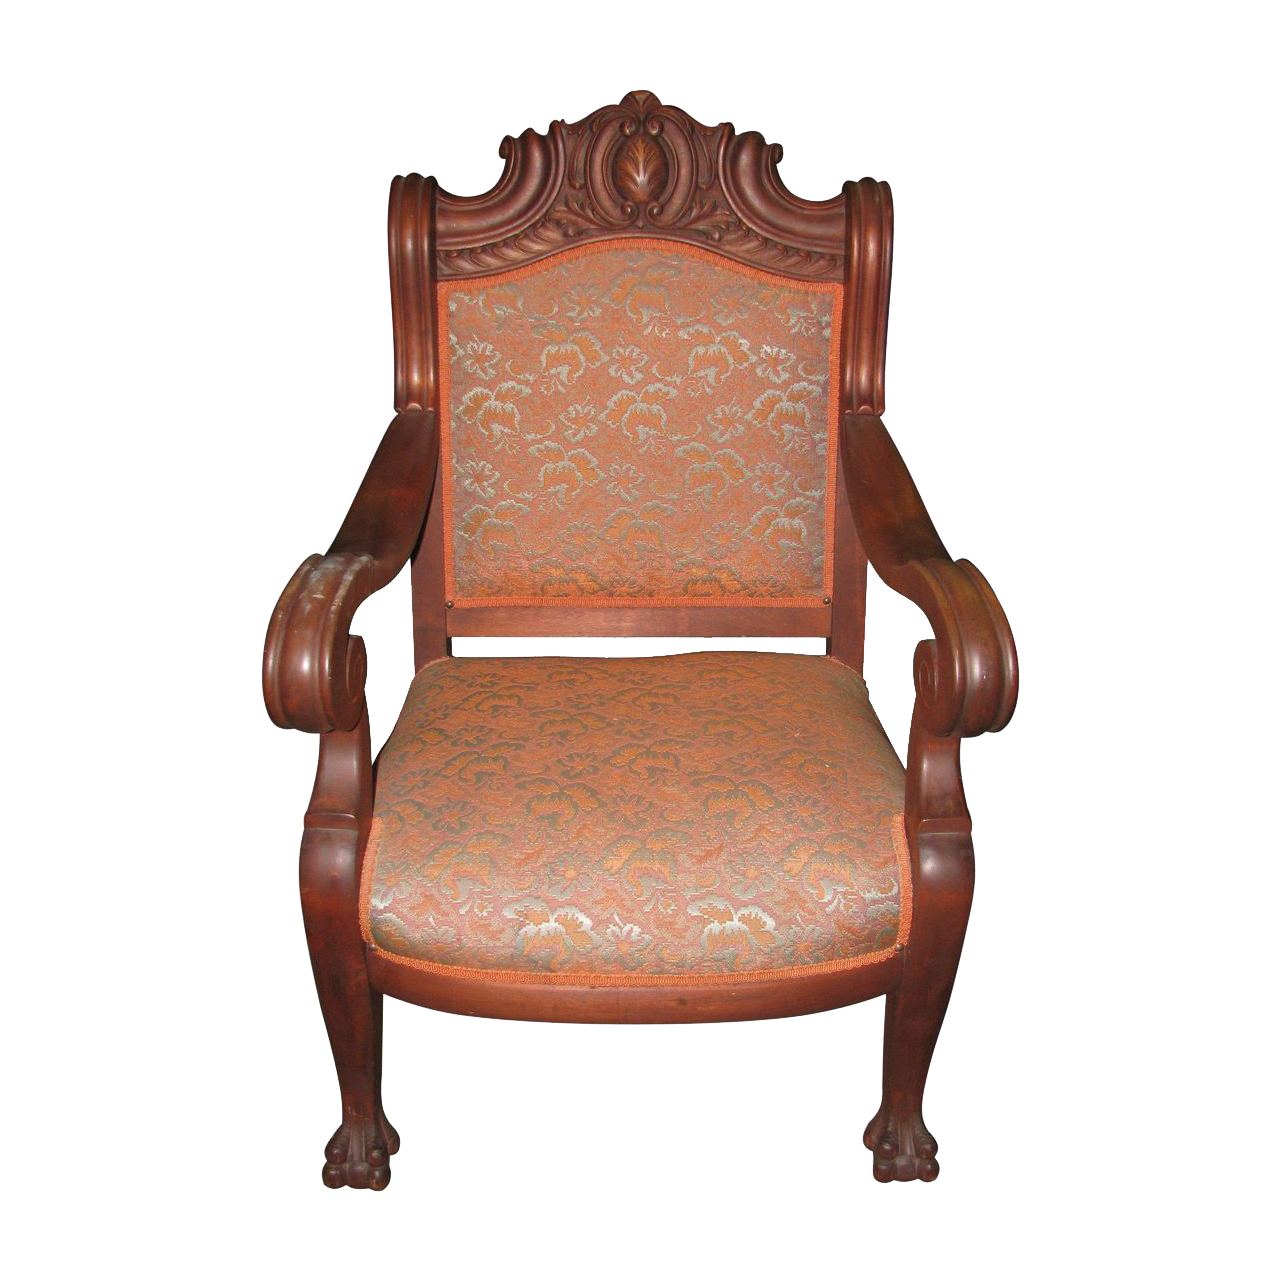 Antique+Wooden+Chairs+Late+1800 Late 1800s carved wood chair with ...